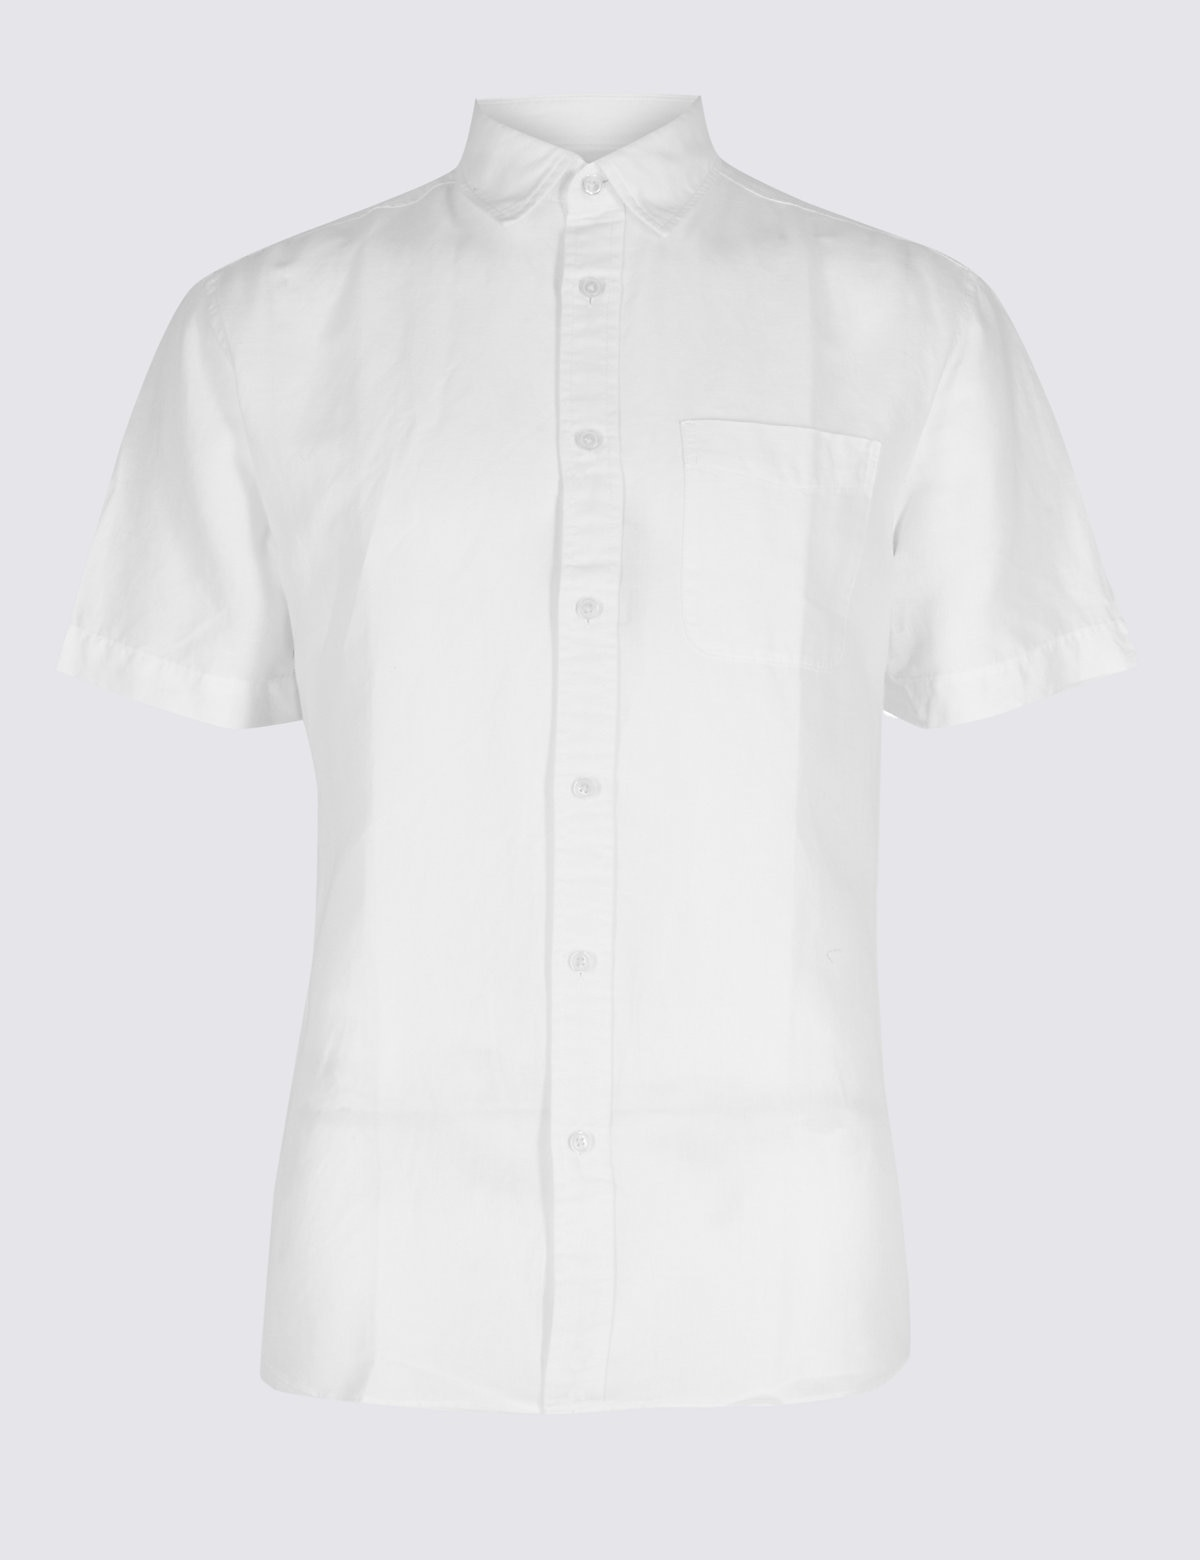 Marks & Spencer White Linen Rich Slim Fit Shirt with Pocket